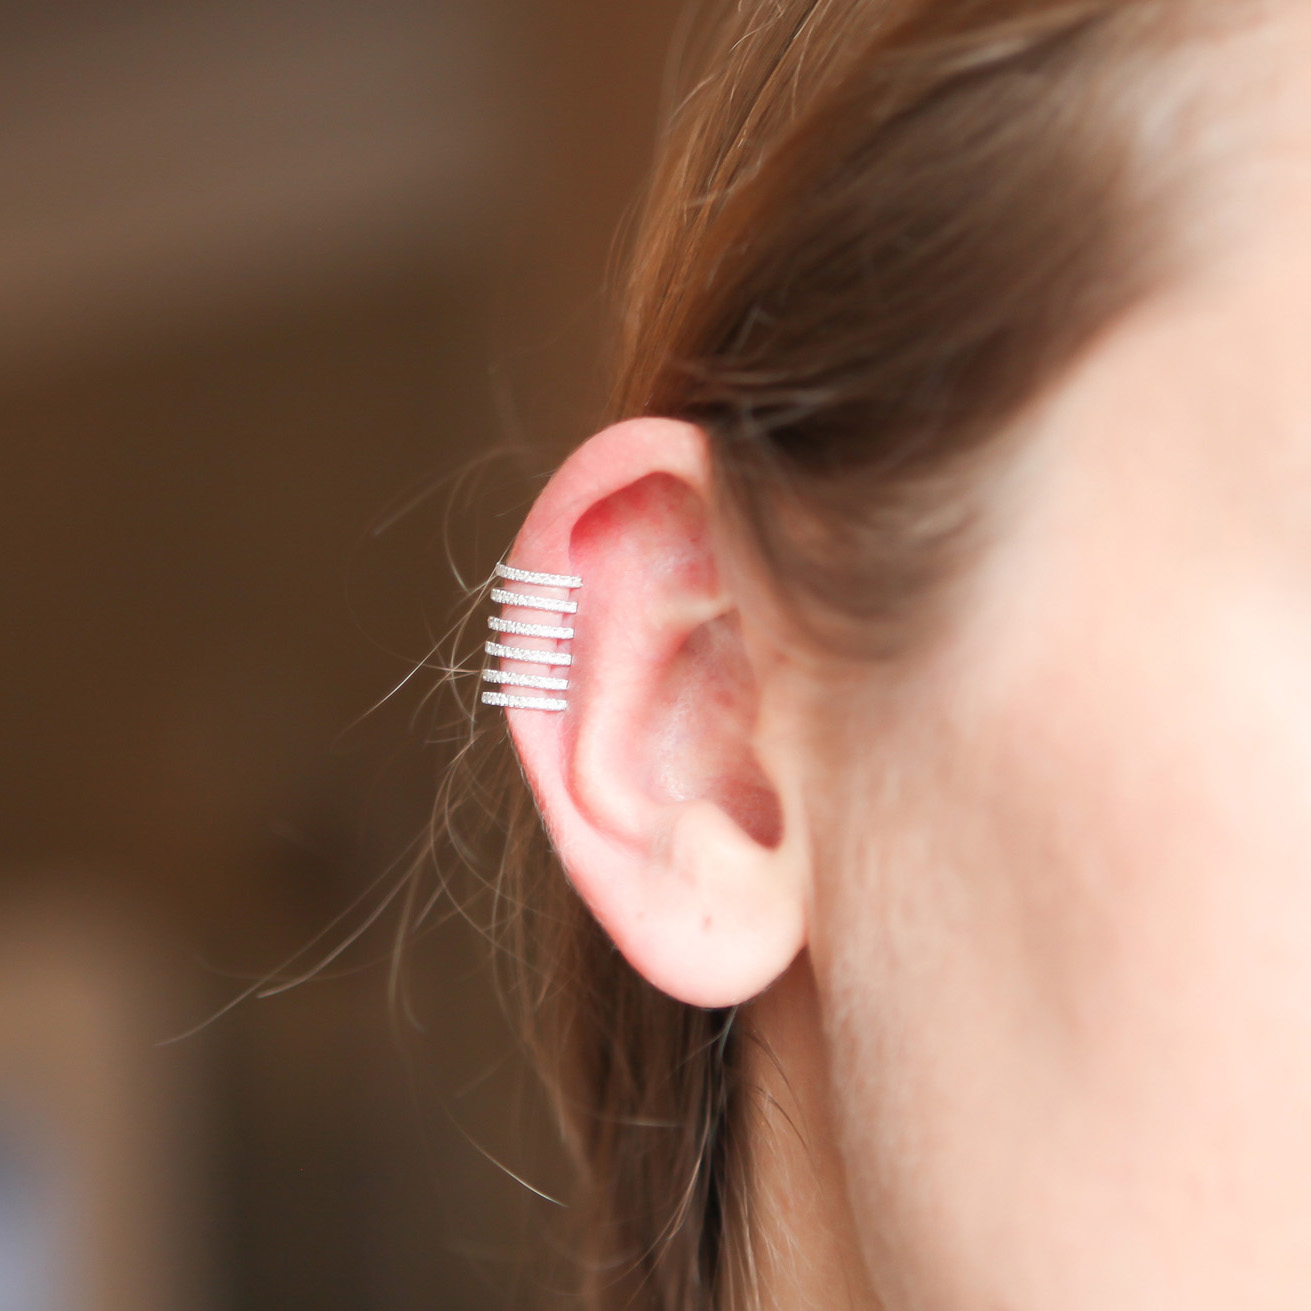 ELISE DRAY DIAMOND EAR CUFF REVIEW